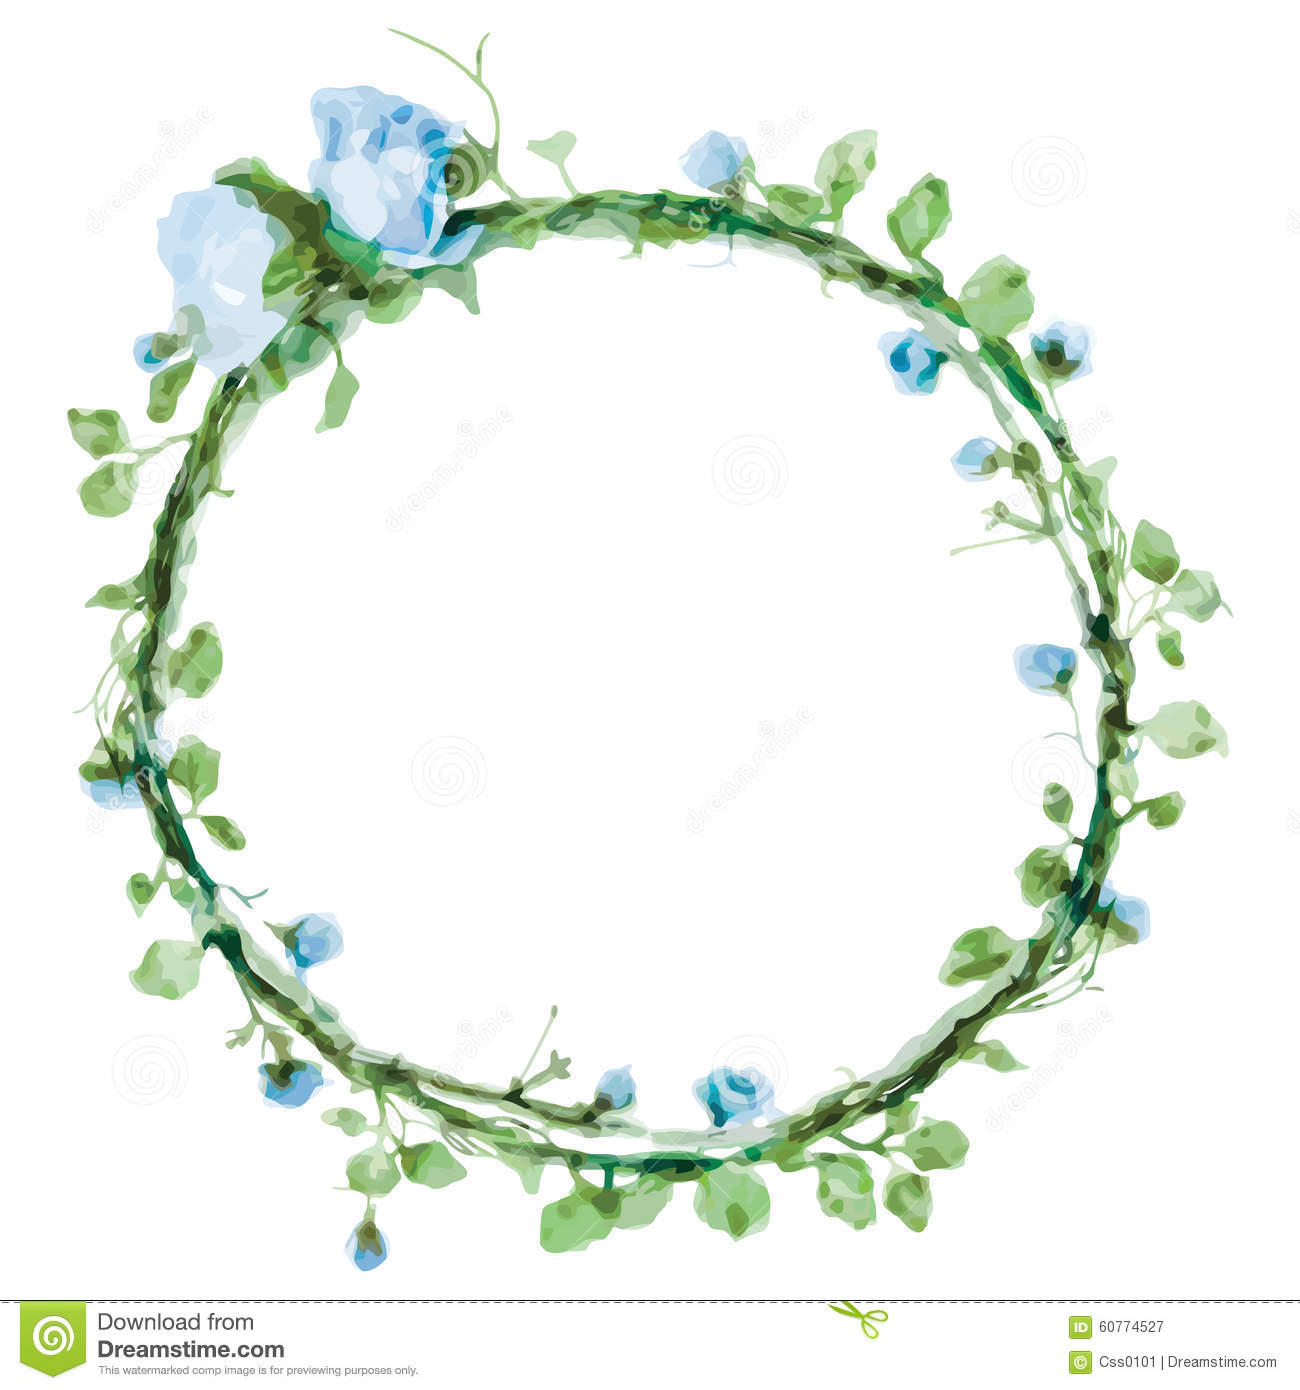 Vector Watercolor Round Frame With Roses And Foliage Elements Hand Draw Floral Border